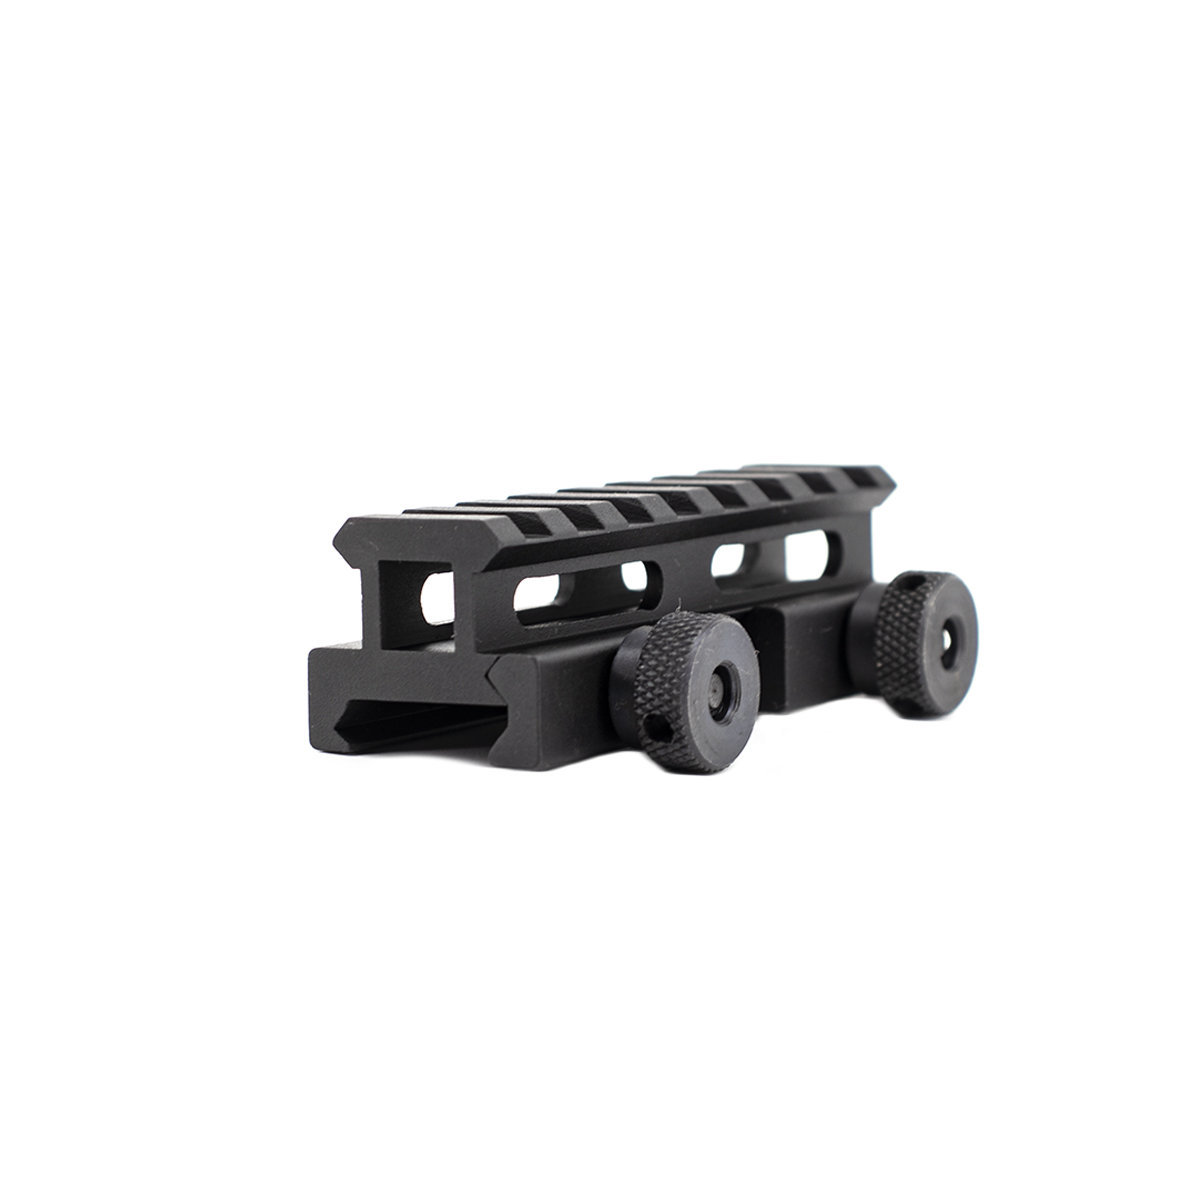 "View larger image of Valken 3/4"" Riser Mount - 8 Slots"